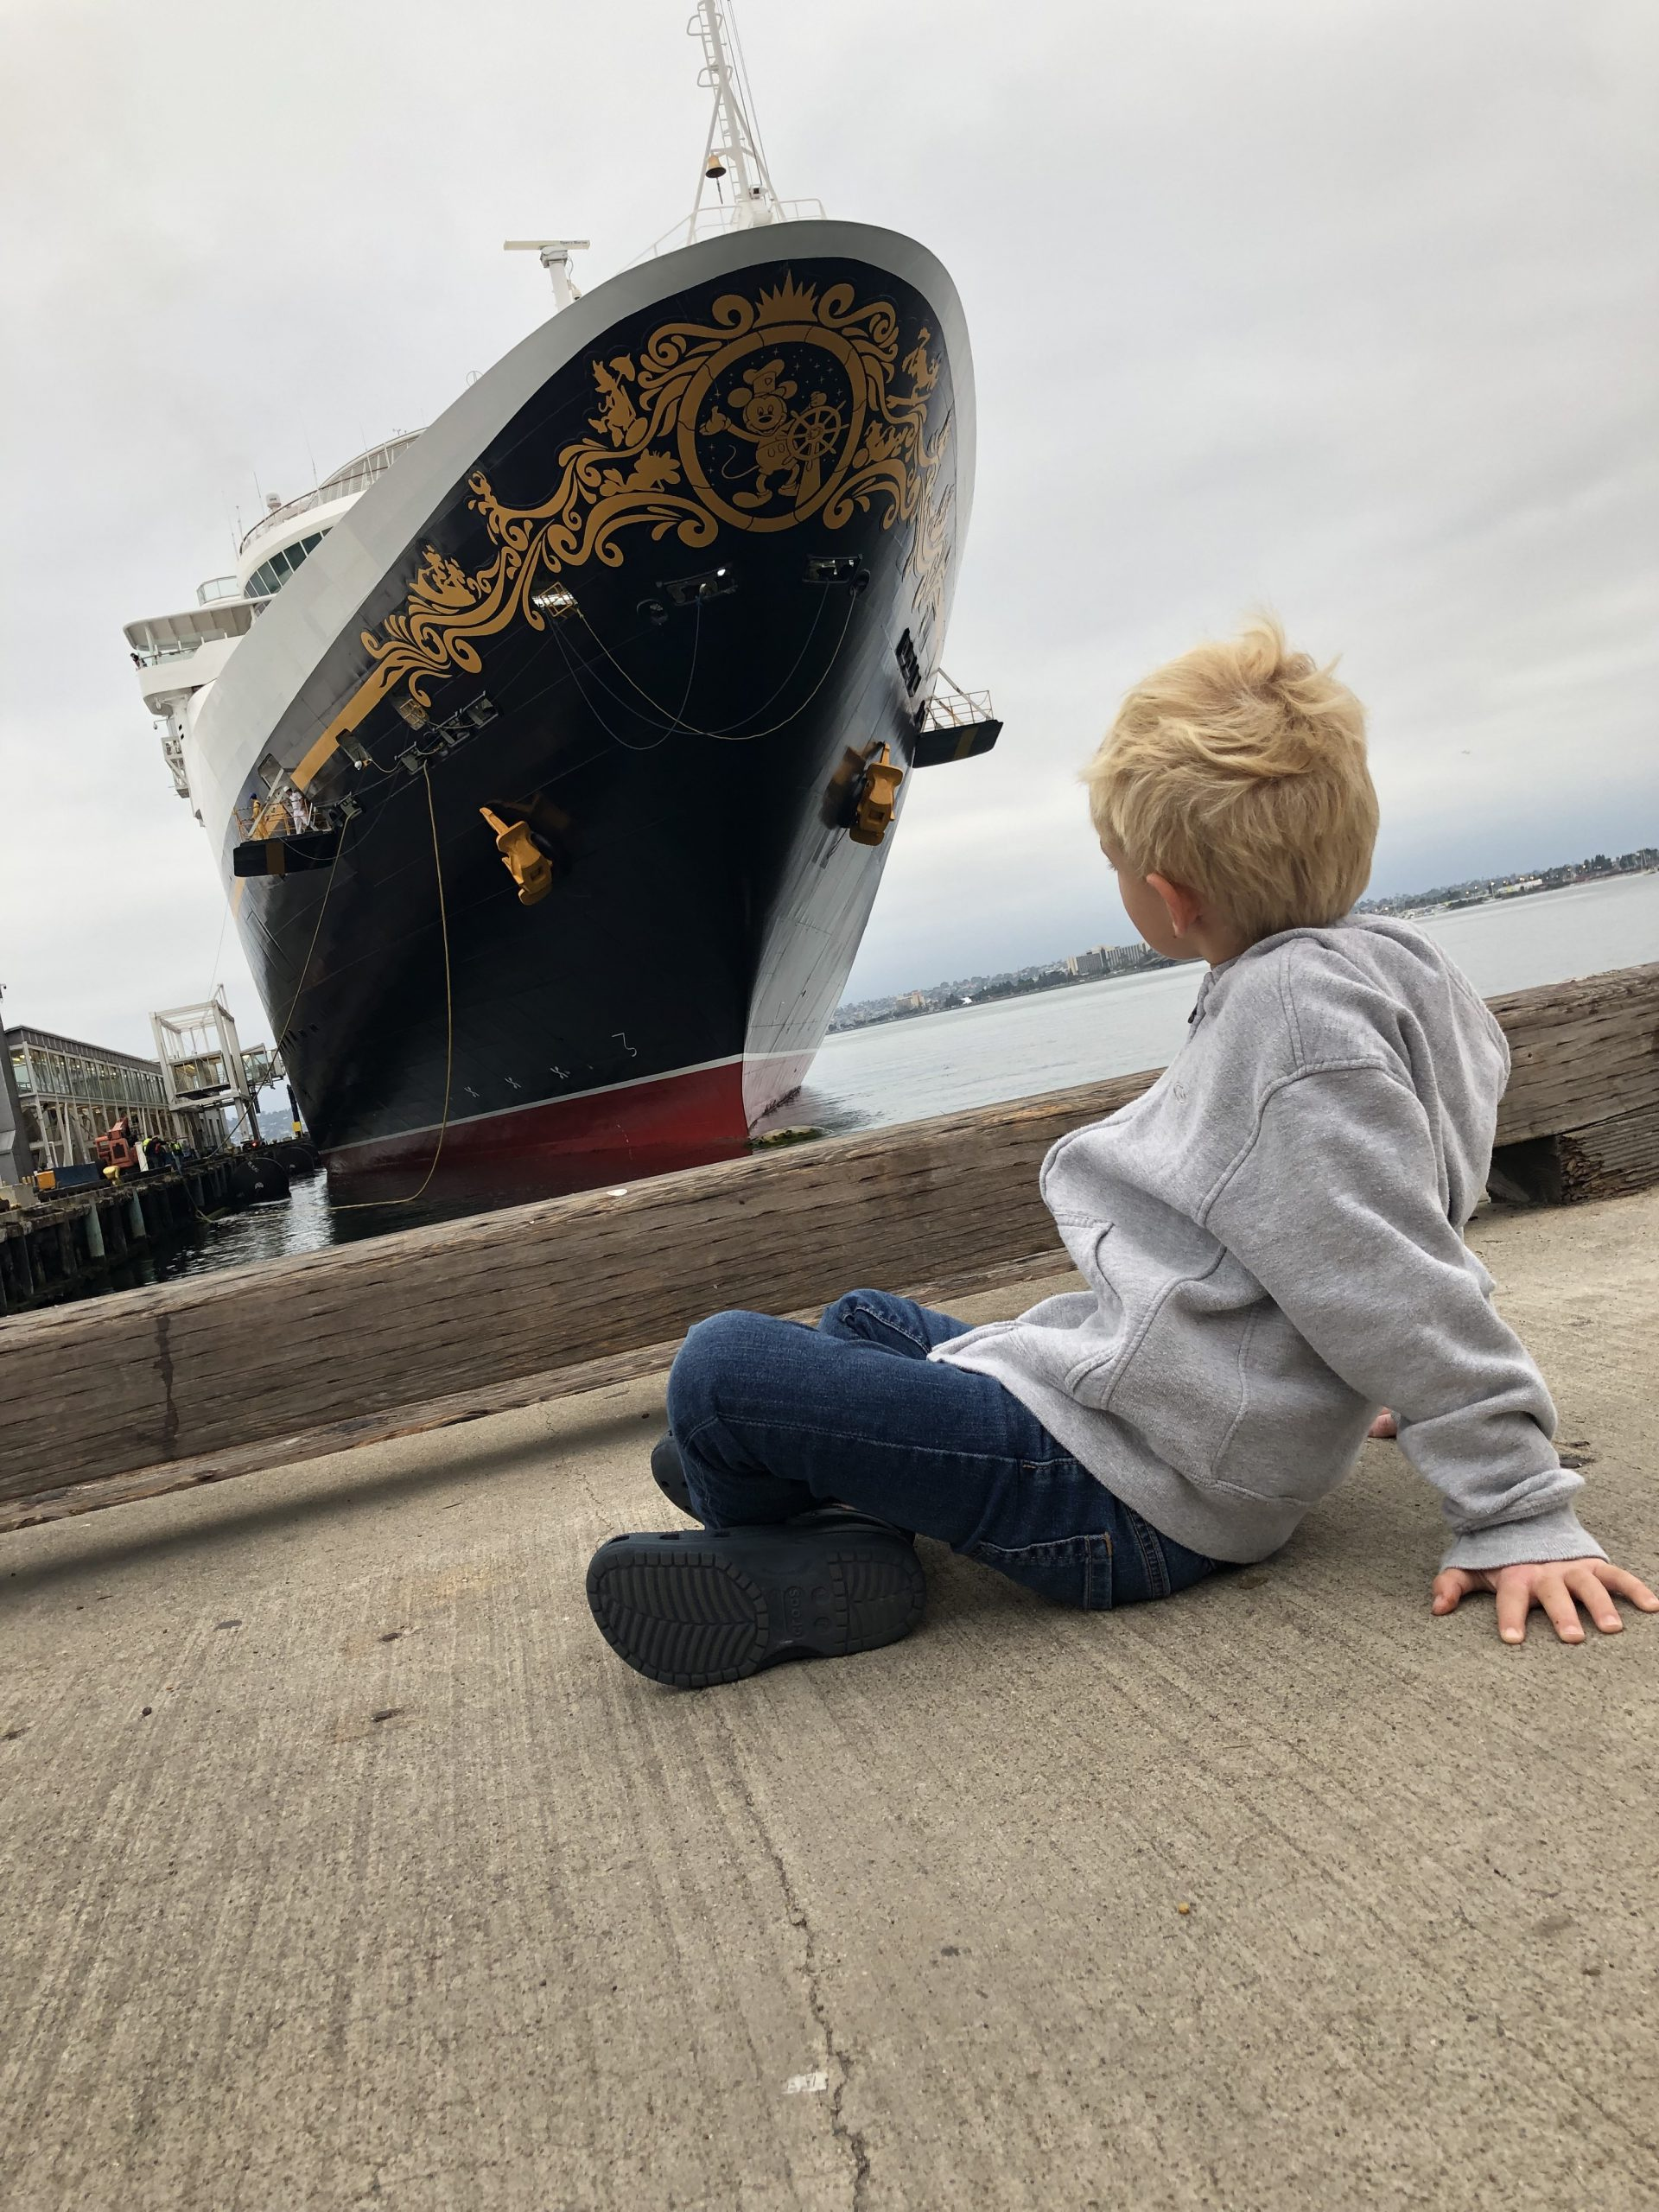 child sItting in front a large cruise ship